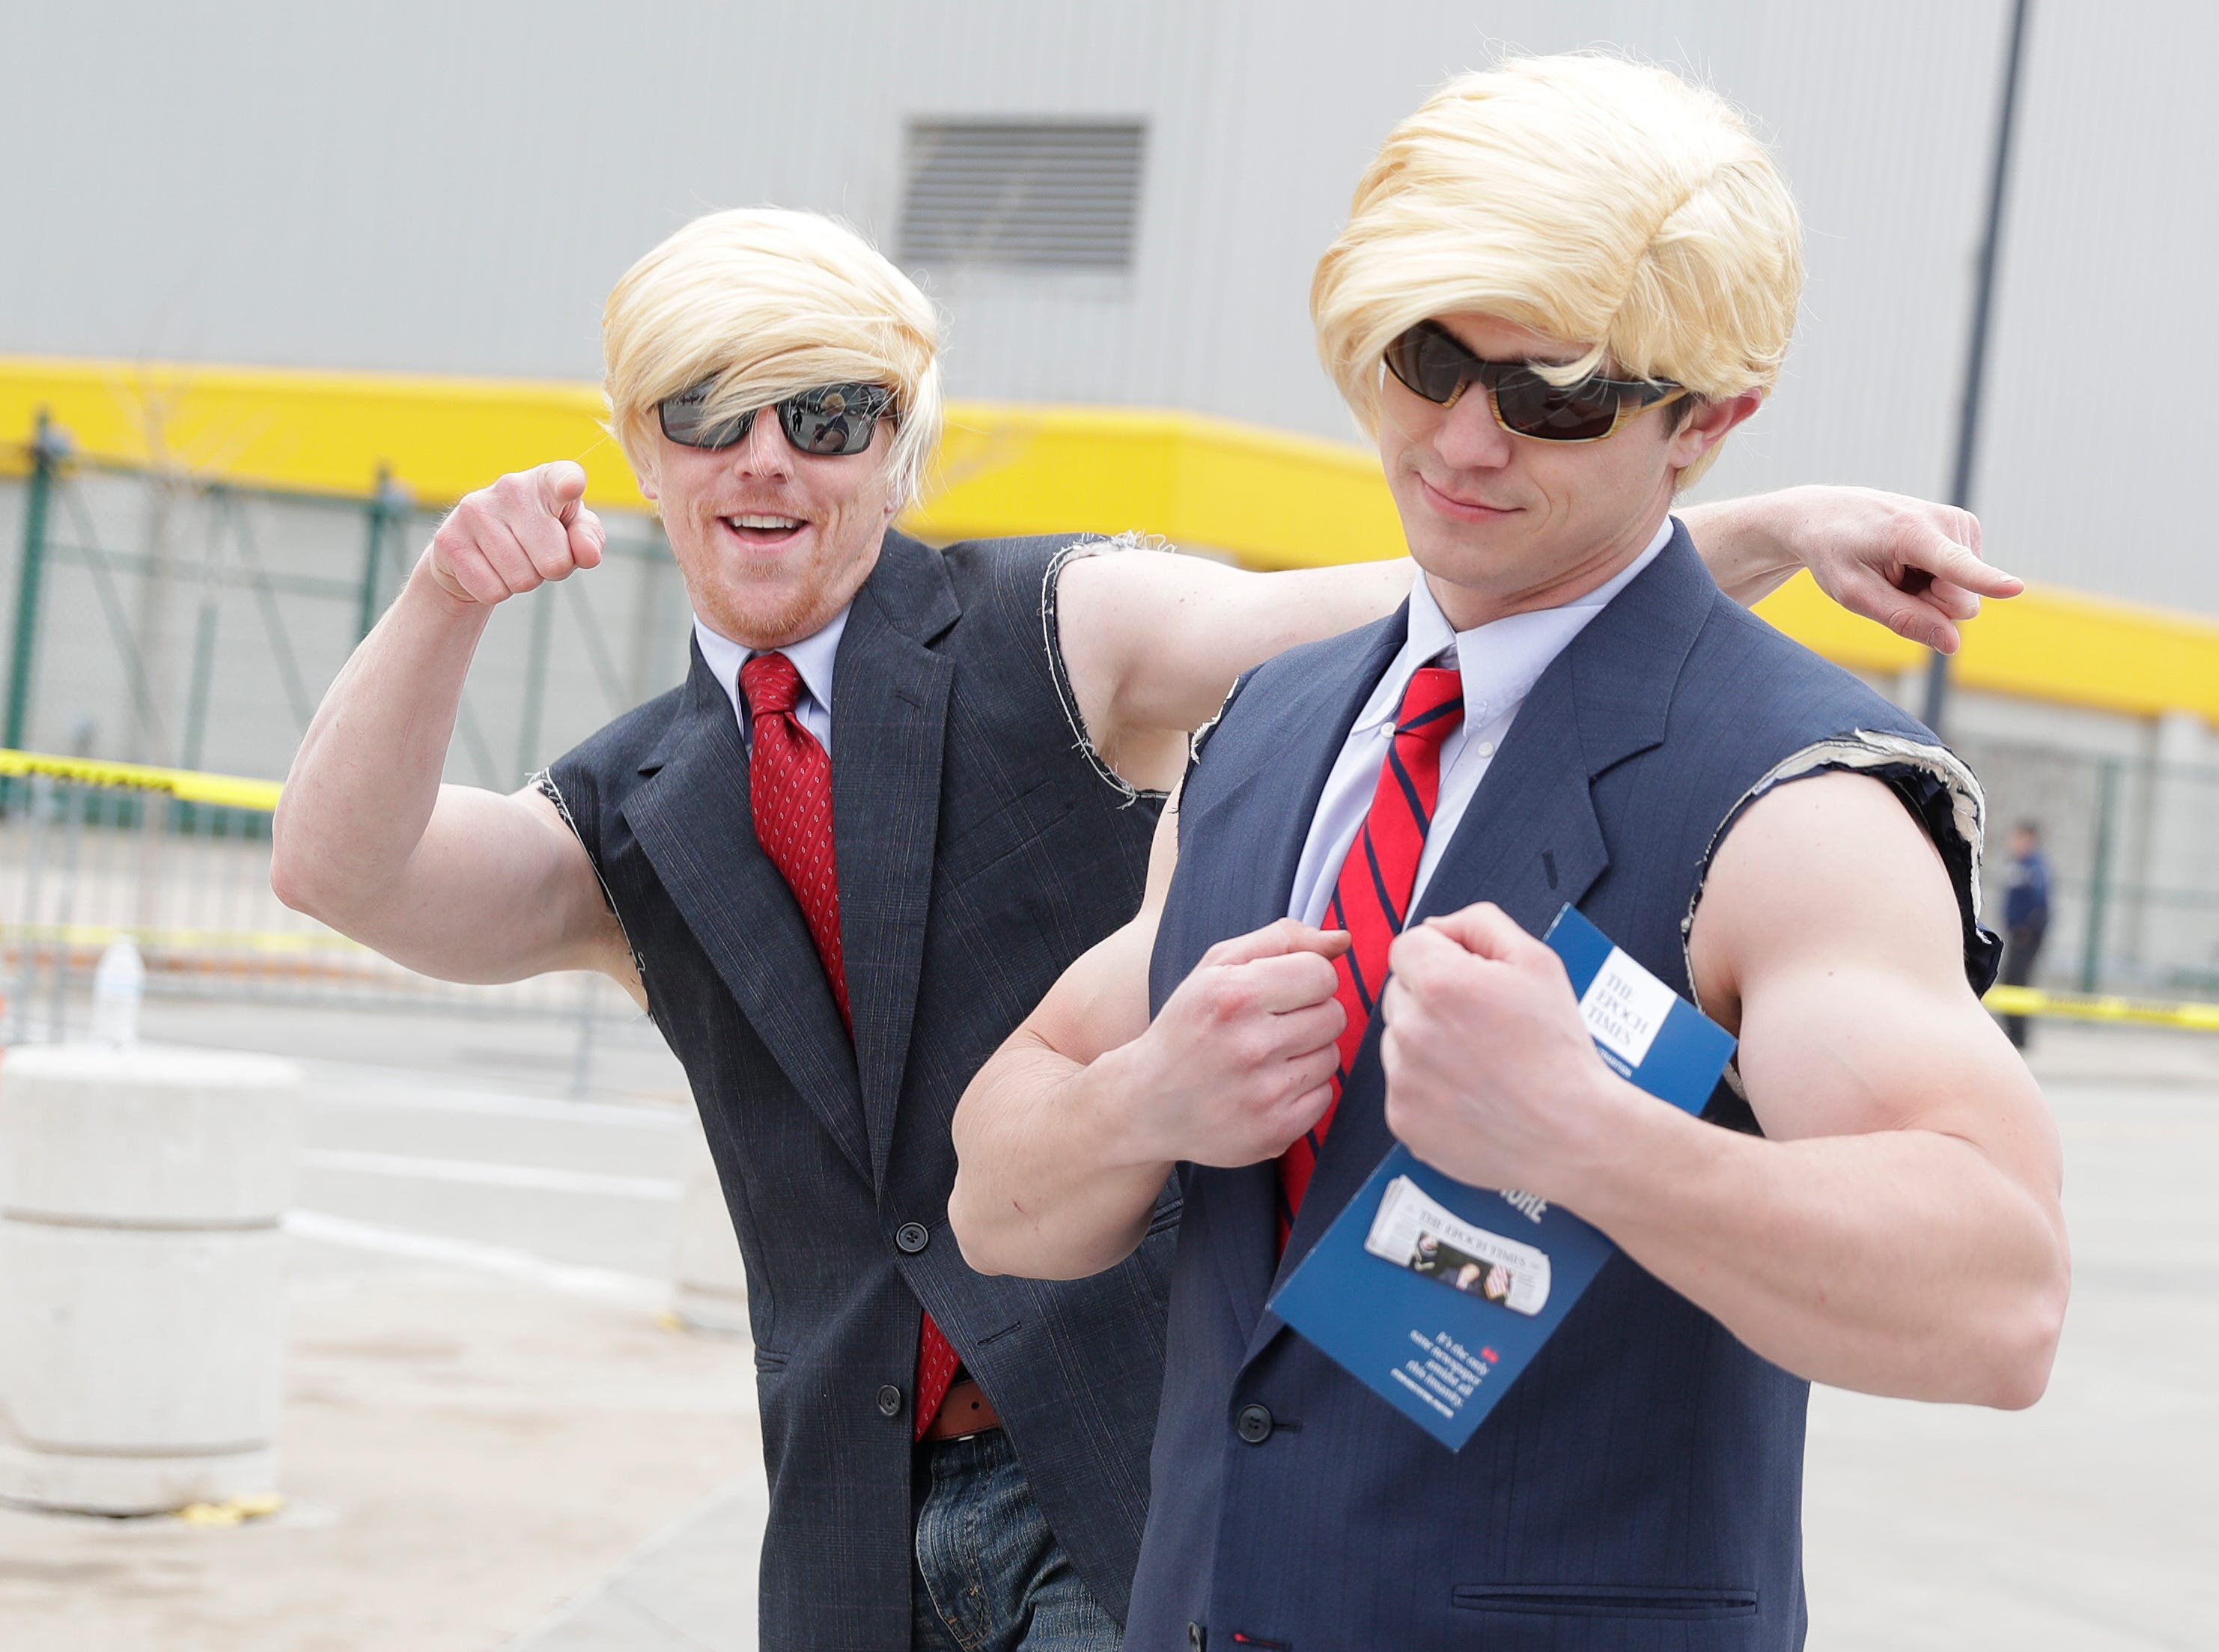 Supporters dressed like President Donald Trump walk to his rally on April 27, 2019 at the Resch Center in Ashwaubenon, Wis.